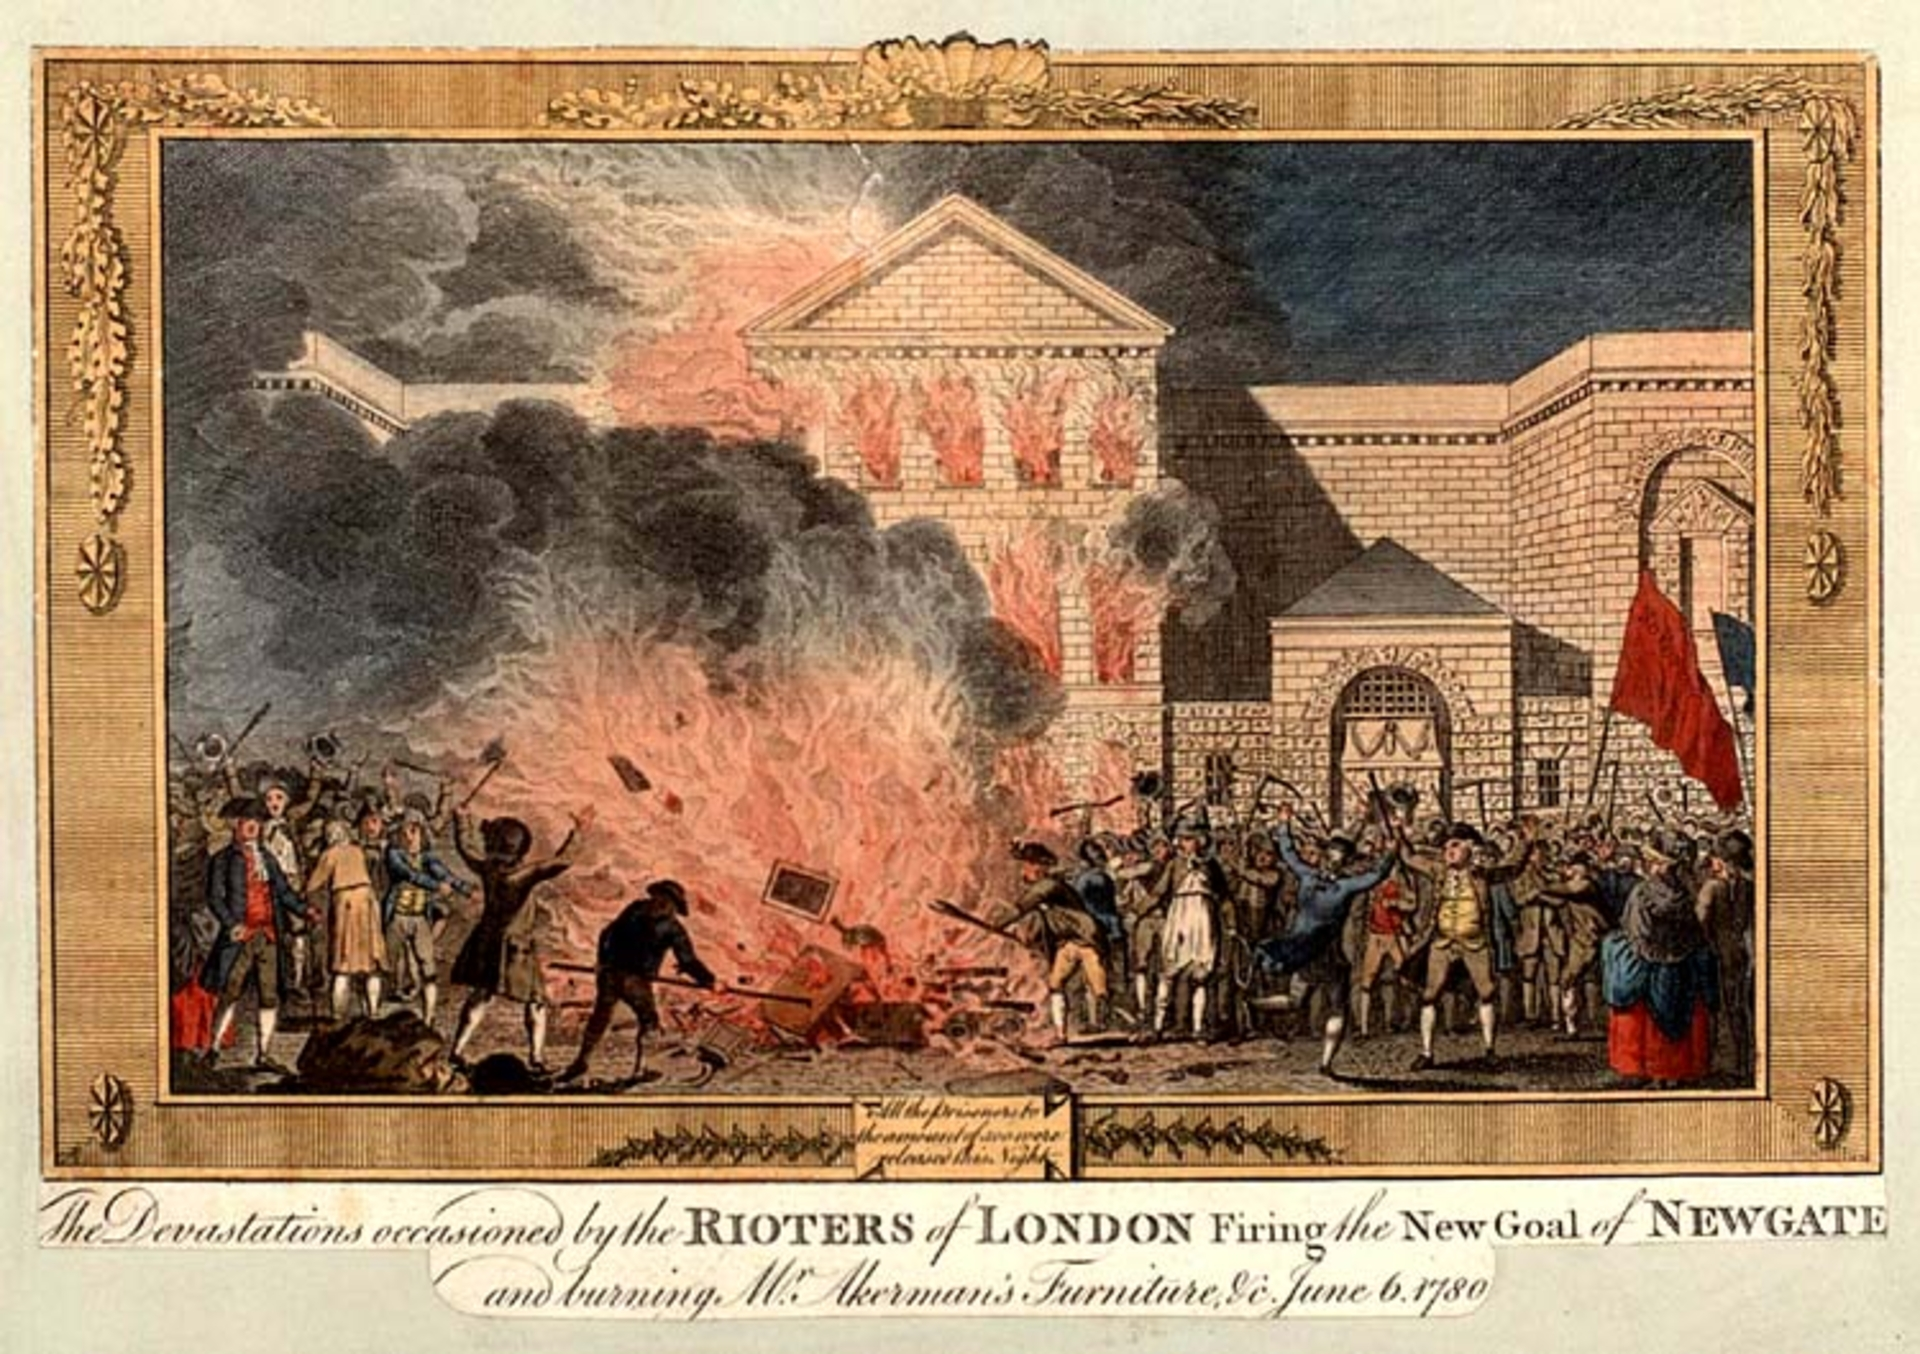 Newgate Prison burned by the rioters in 1780